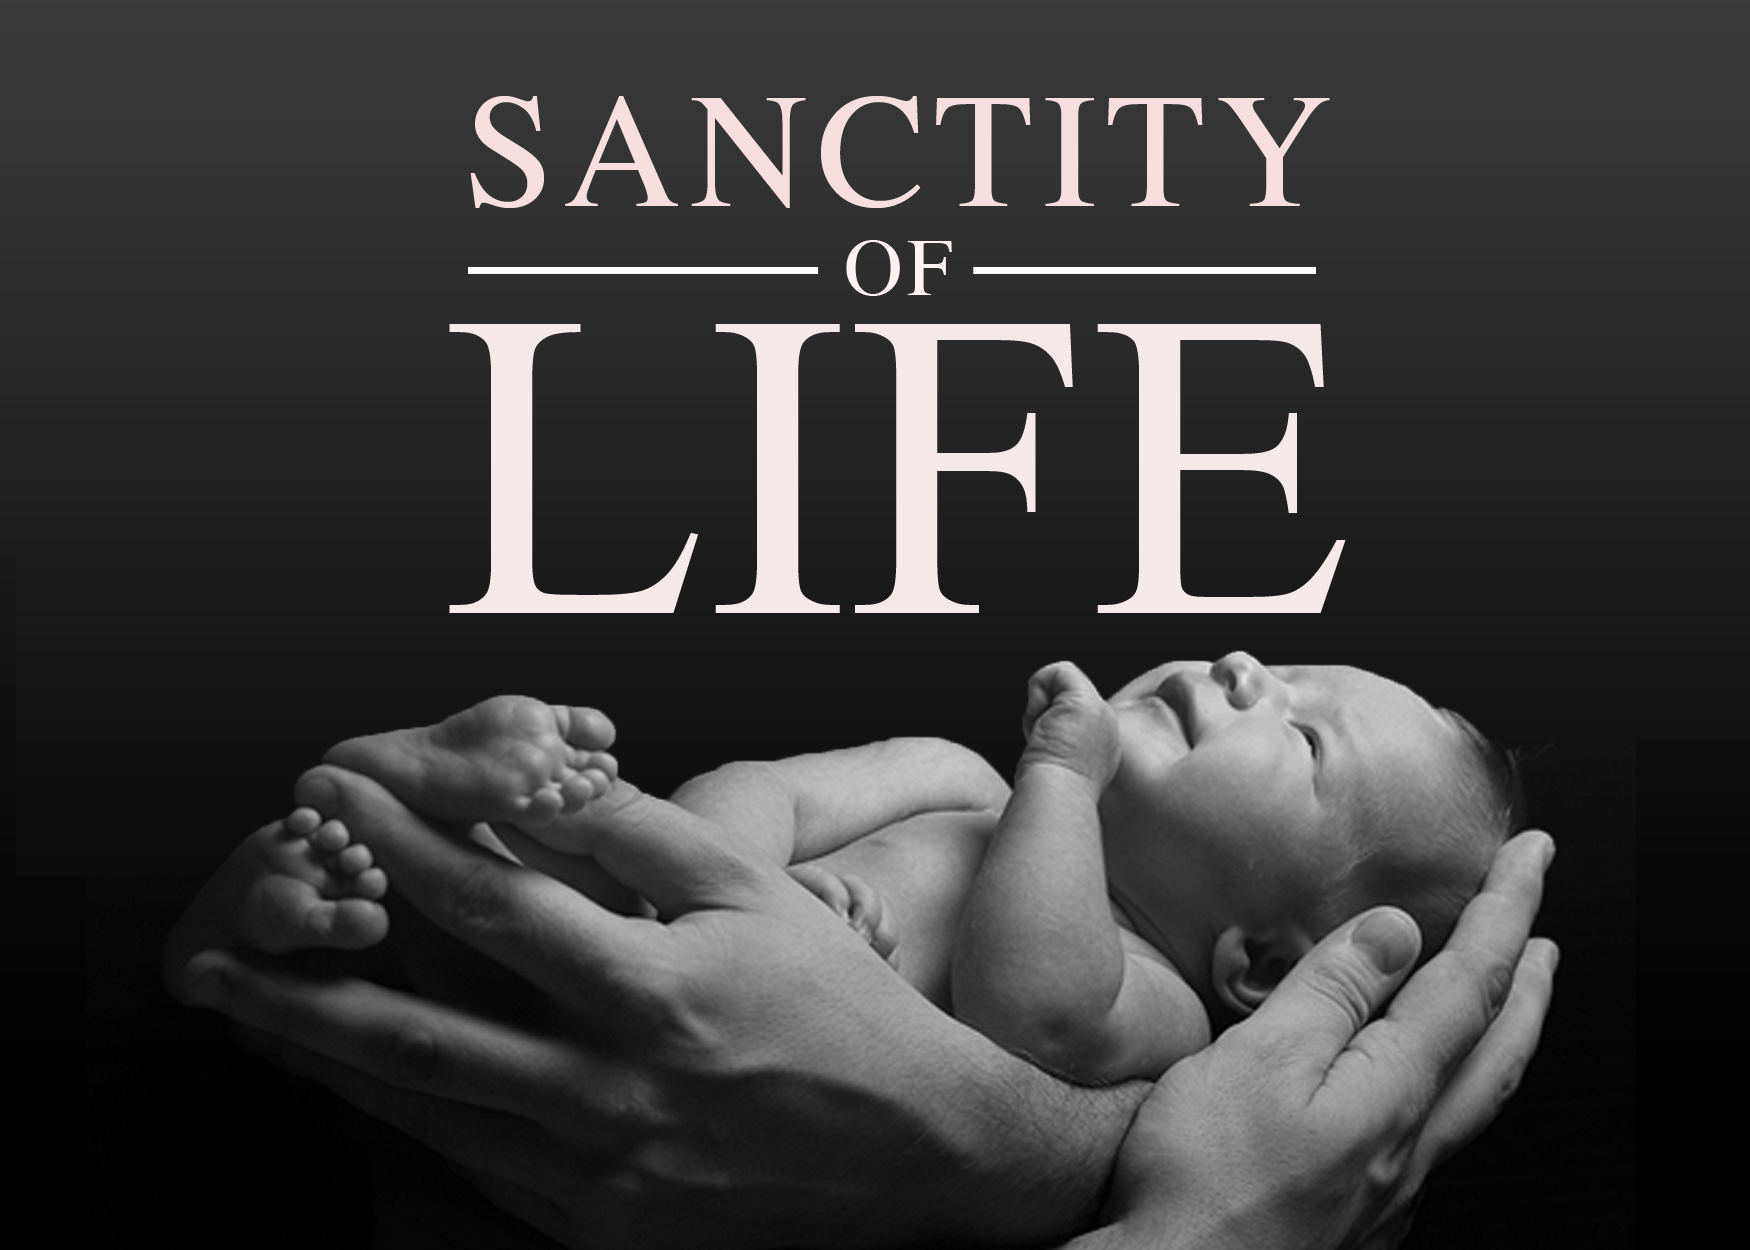 sanctity of human life essay In religion and ethics, the inviolability or sanctity of life is a principle of implied protection regarding aspects of sentient life that are said to be holy, sacred.